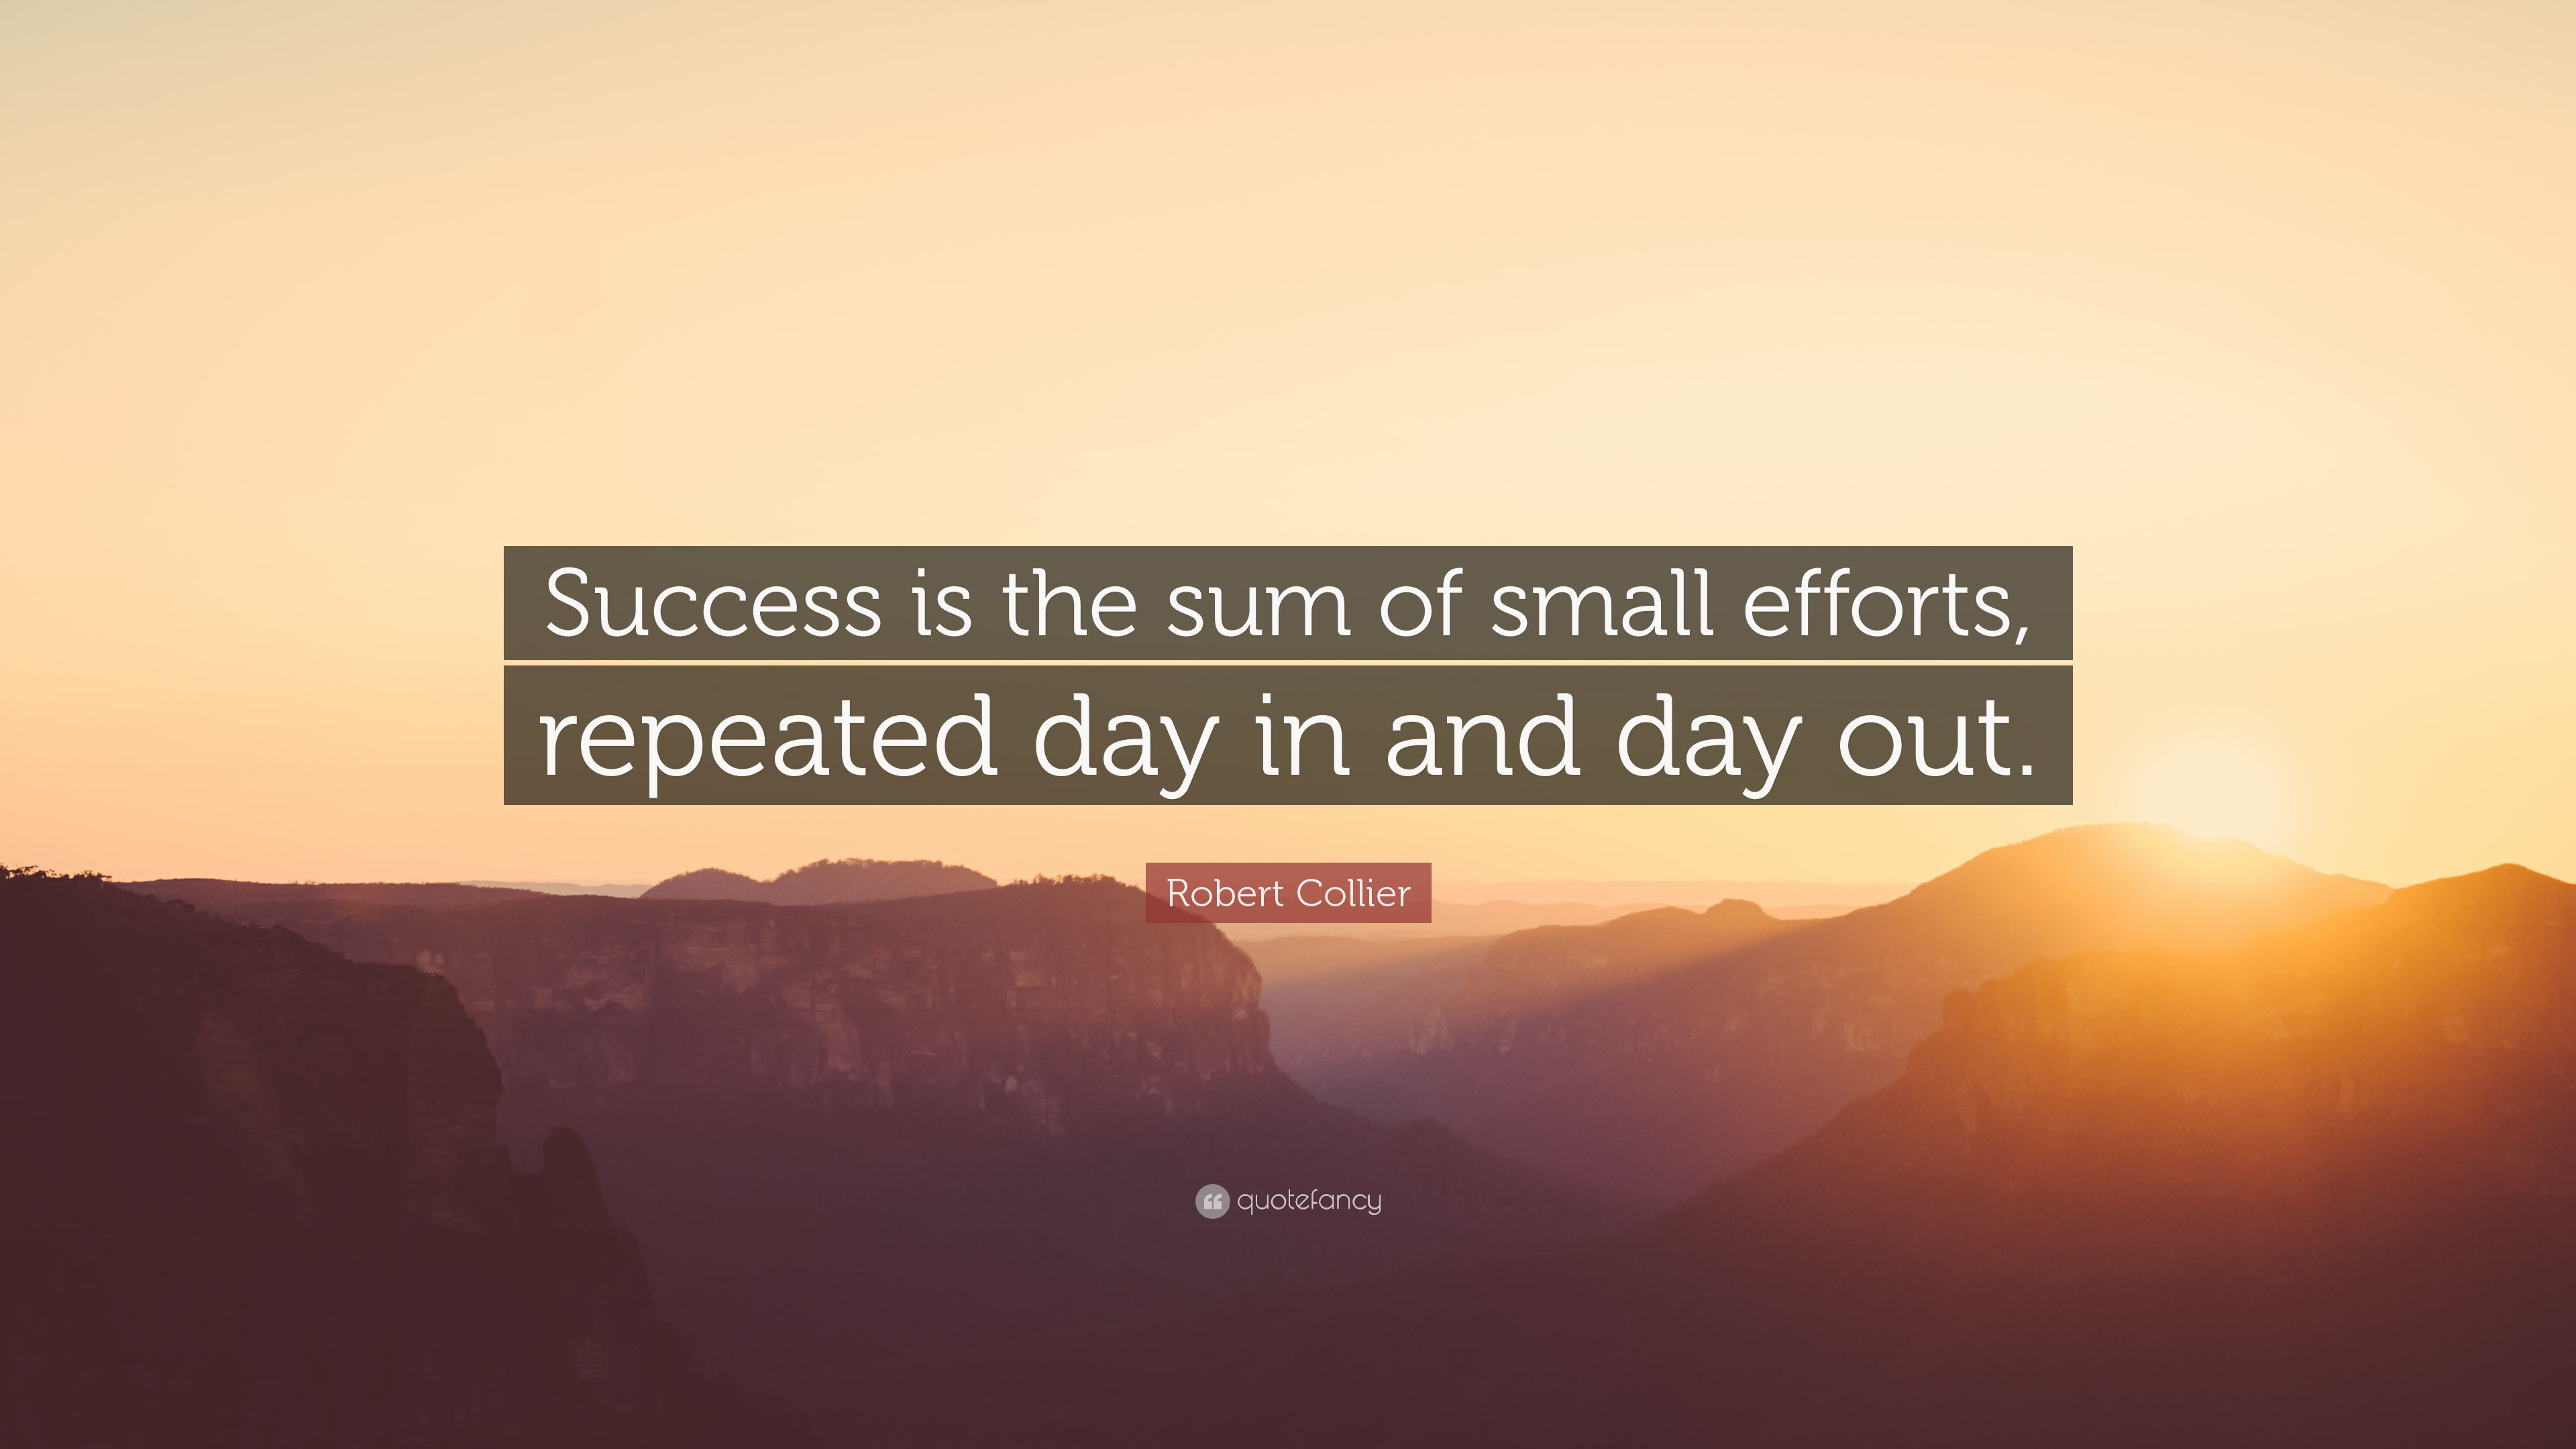 Motivational Life Quotes Wallpapers Robert Collier Quote Success Is The Sum Of Small Efforts